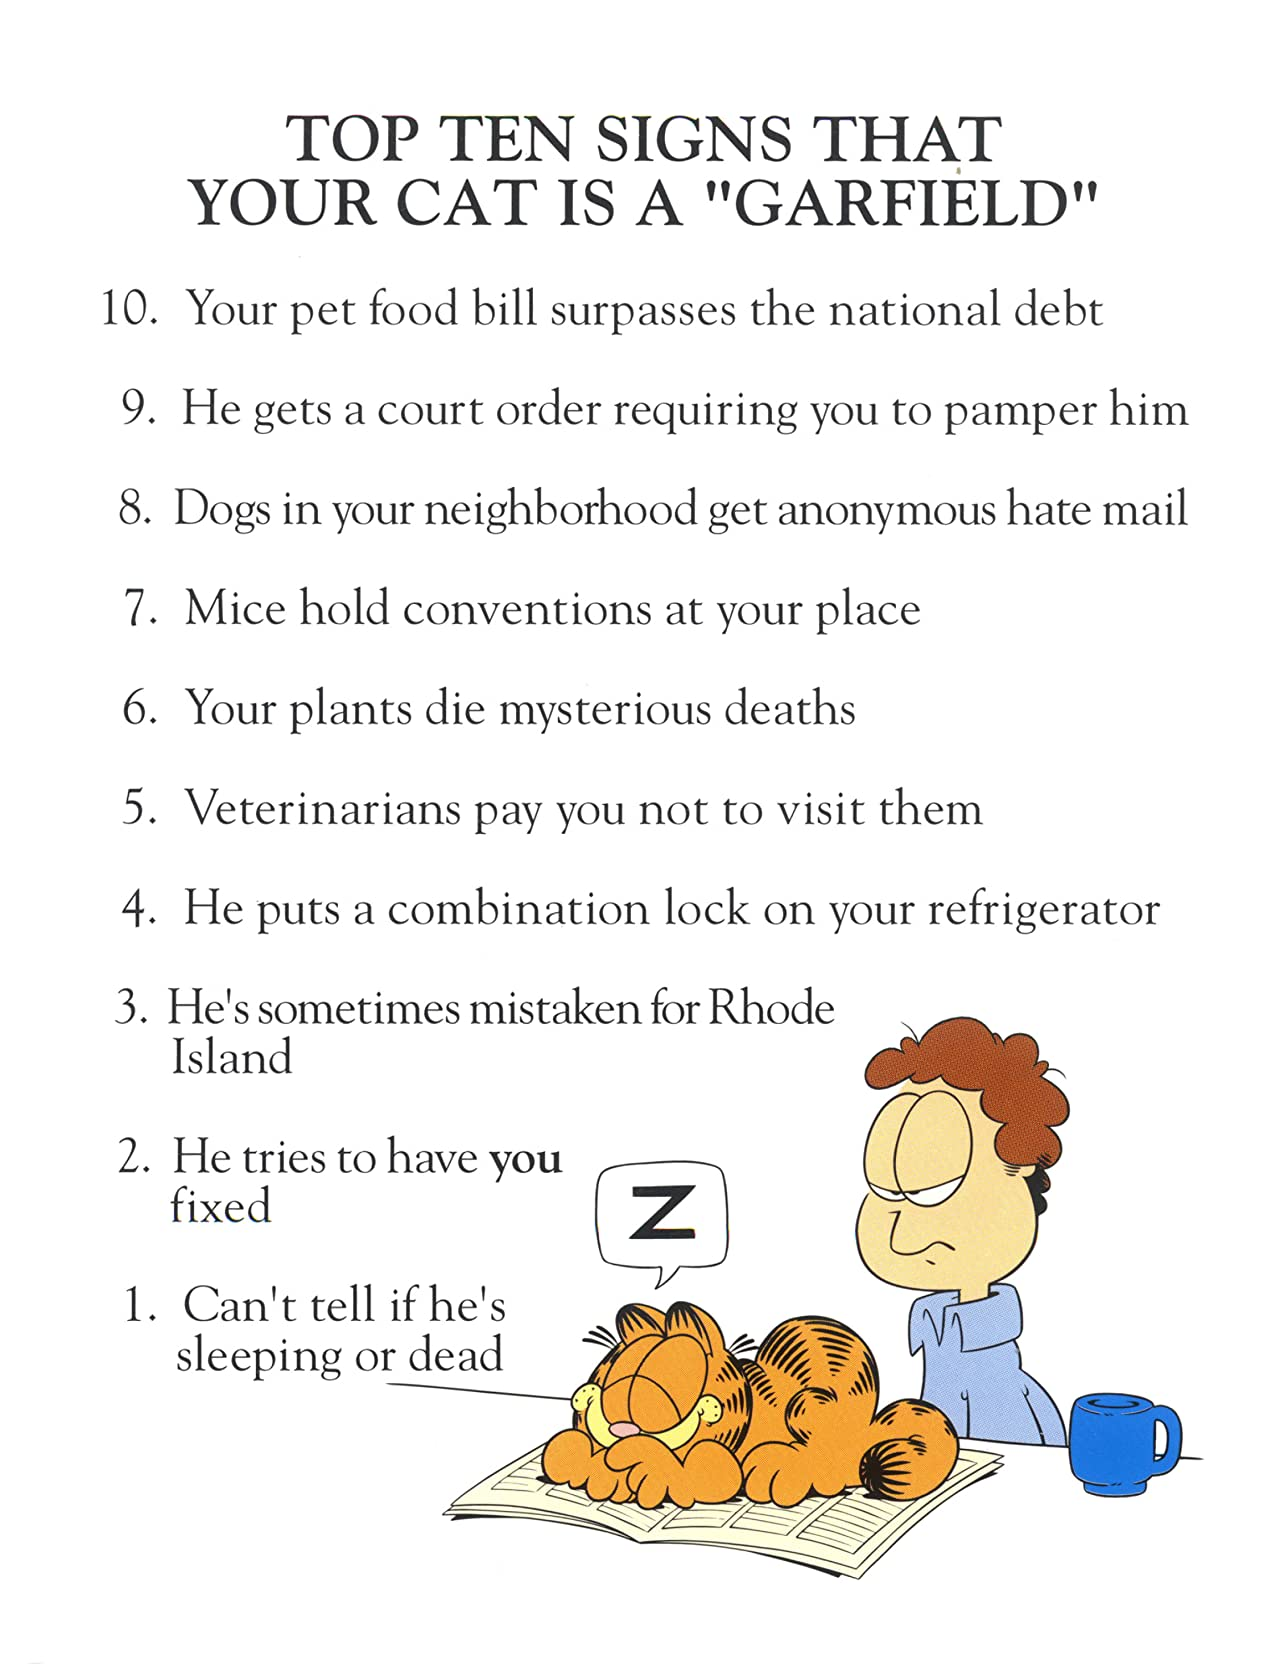 Garfield's Top Ten Tom(cat) Foolery